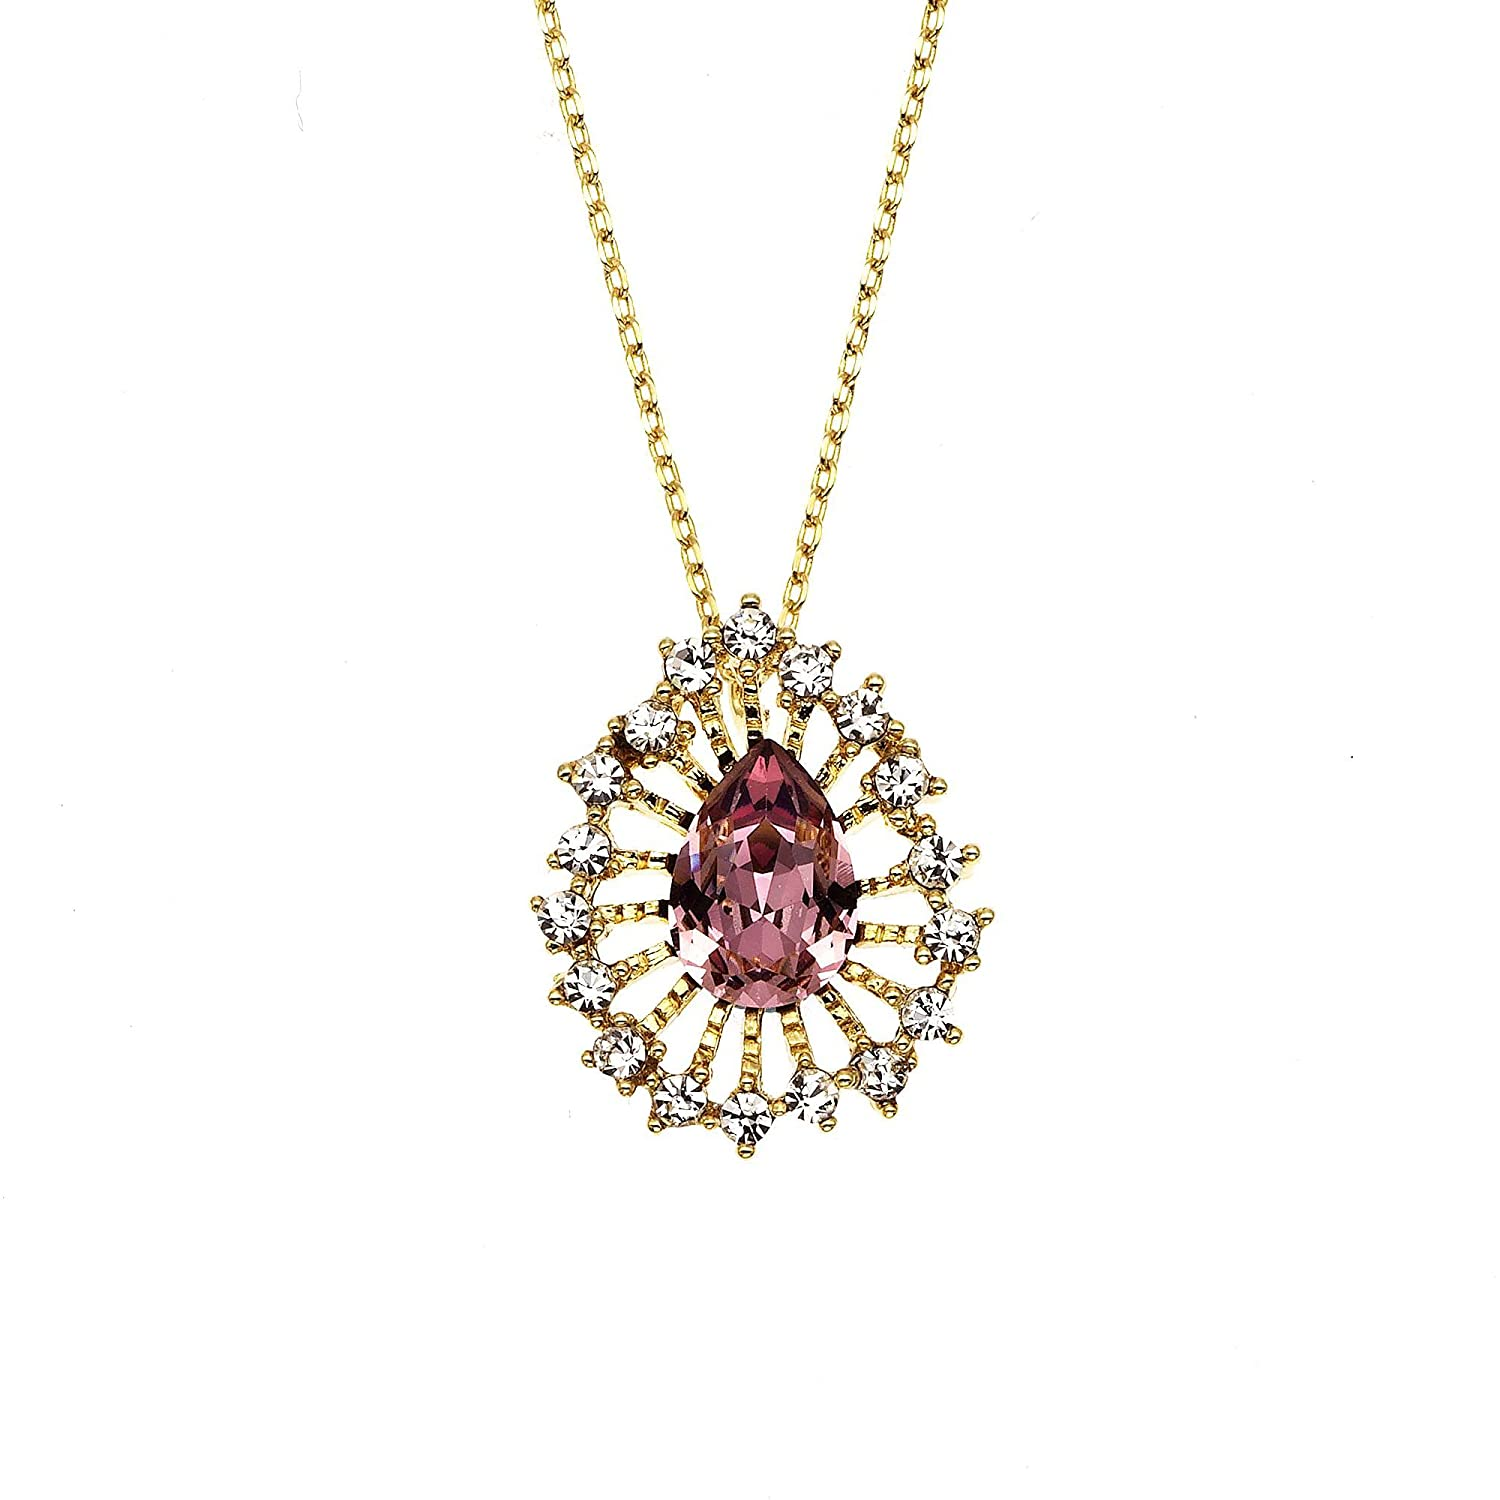 Vintage Style Jewelry, Retro Jewelry Collection Bijoux 14K Gold Plated Sunburst Necklace with Antique Pink Swarovski Stone $15.99 AT vintagedancer.com